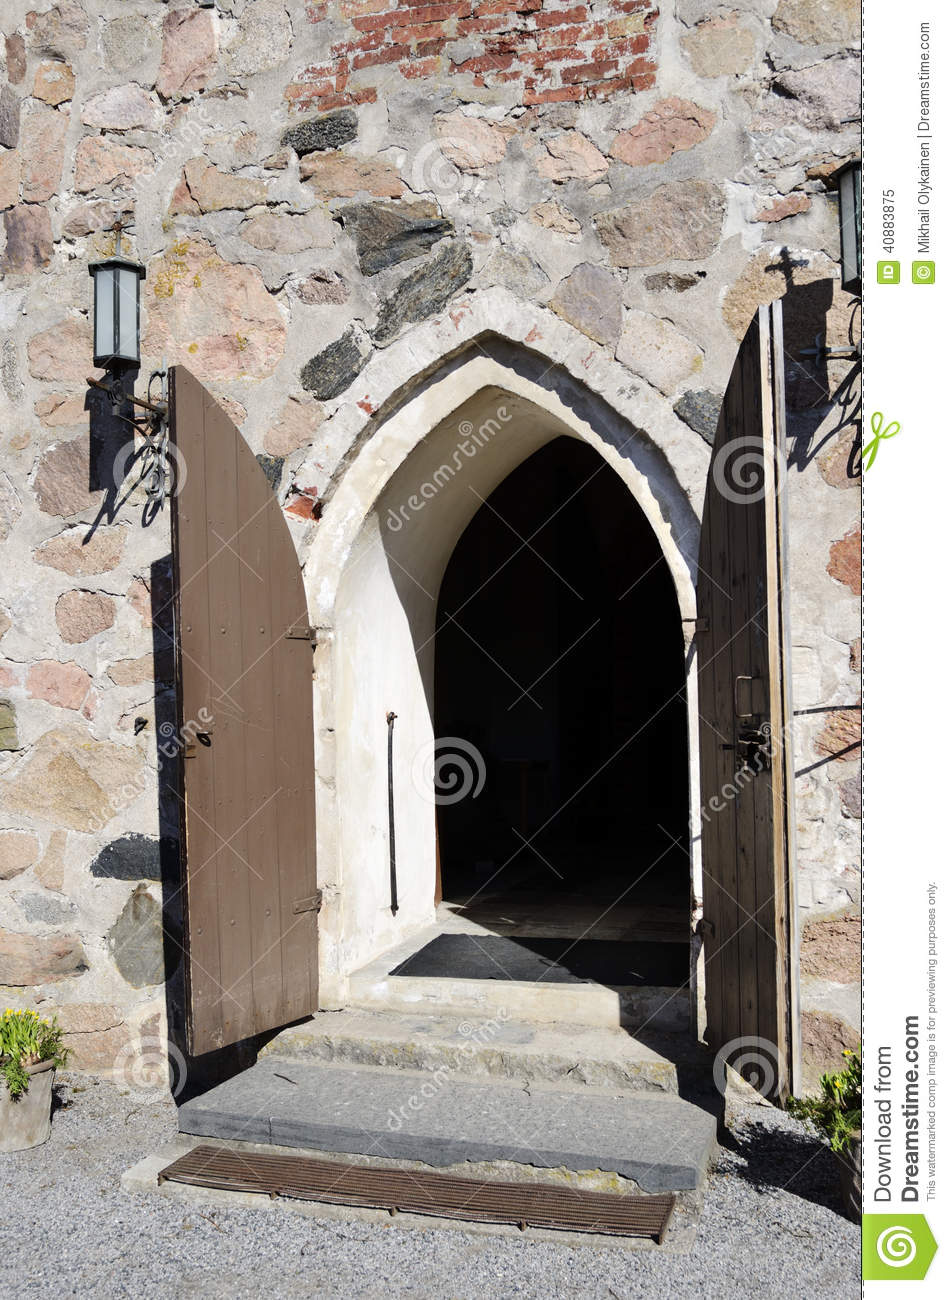 Open church door clipart - Church Open